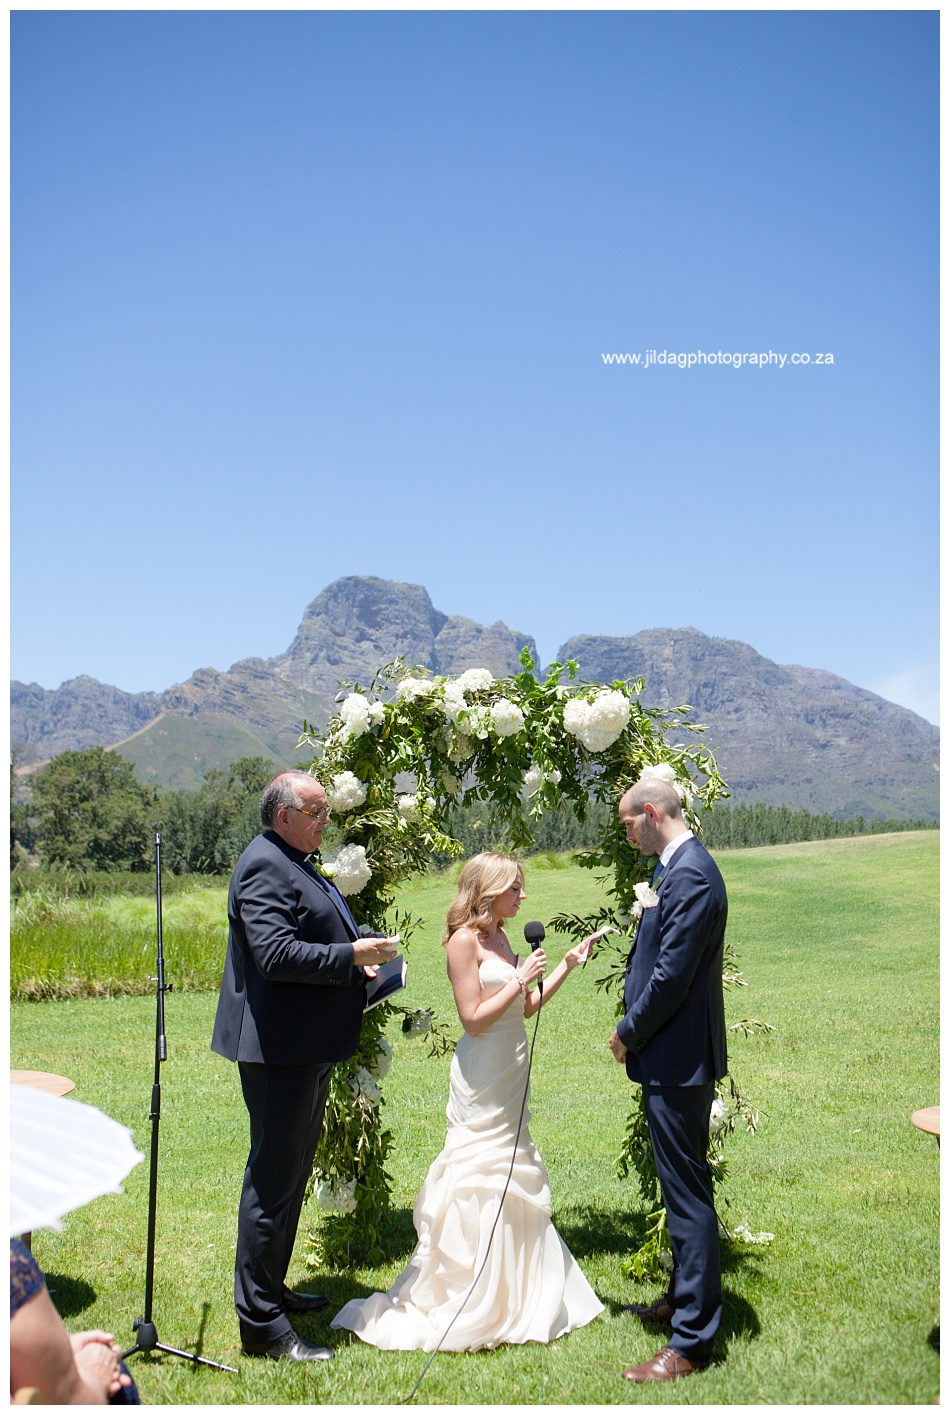 Jilda-G-Photography-Boschendal-wedding_1146